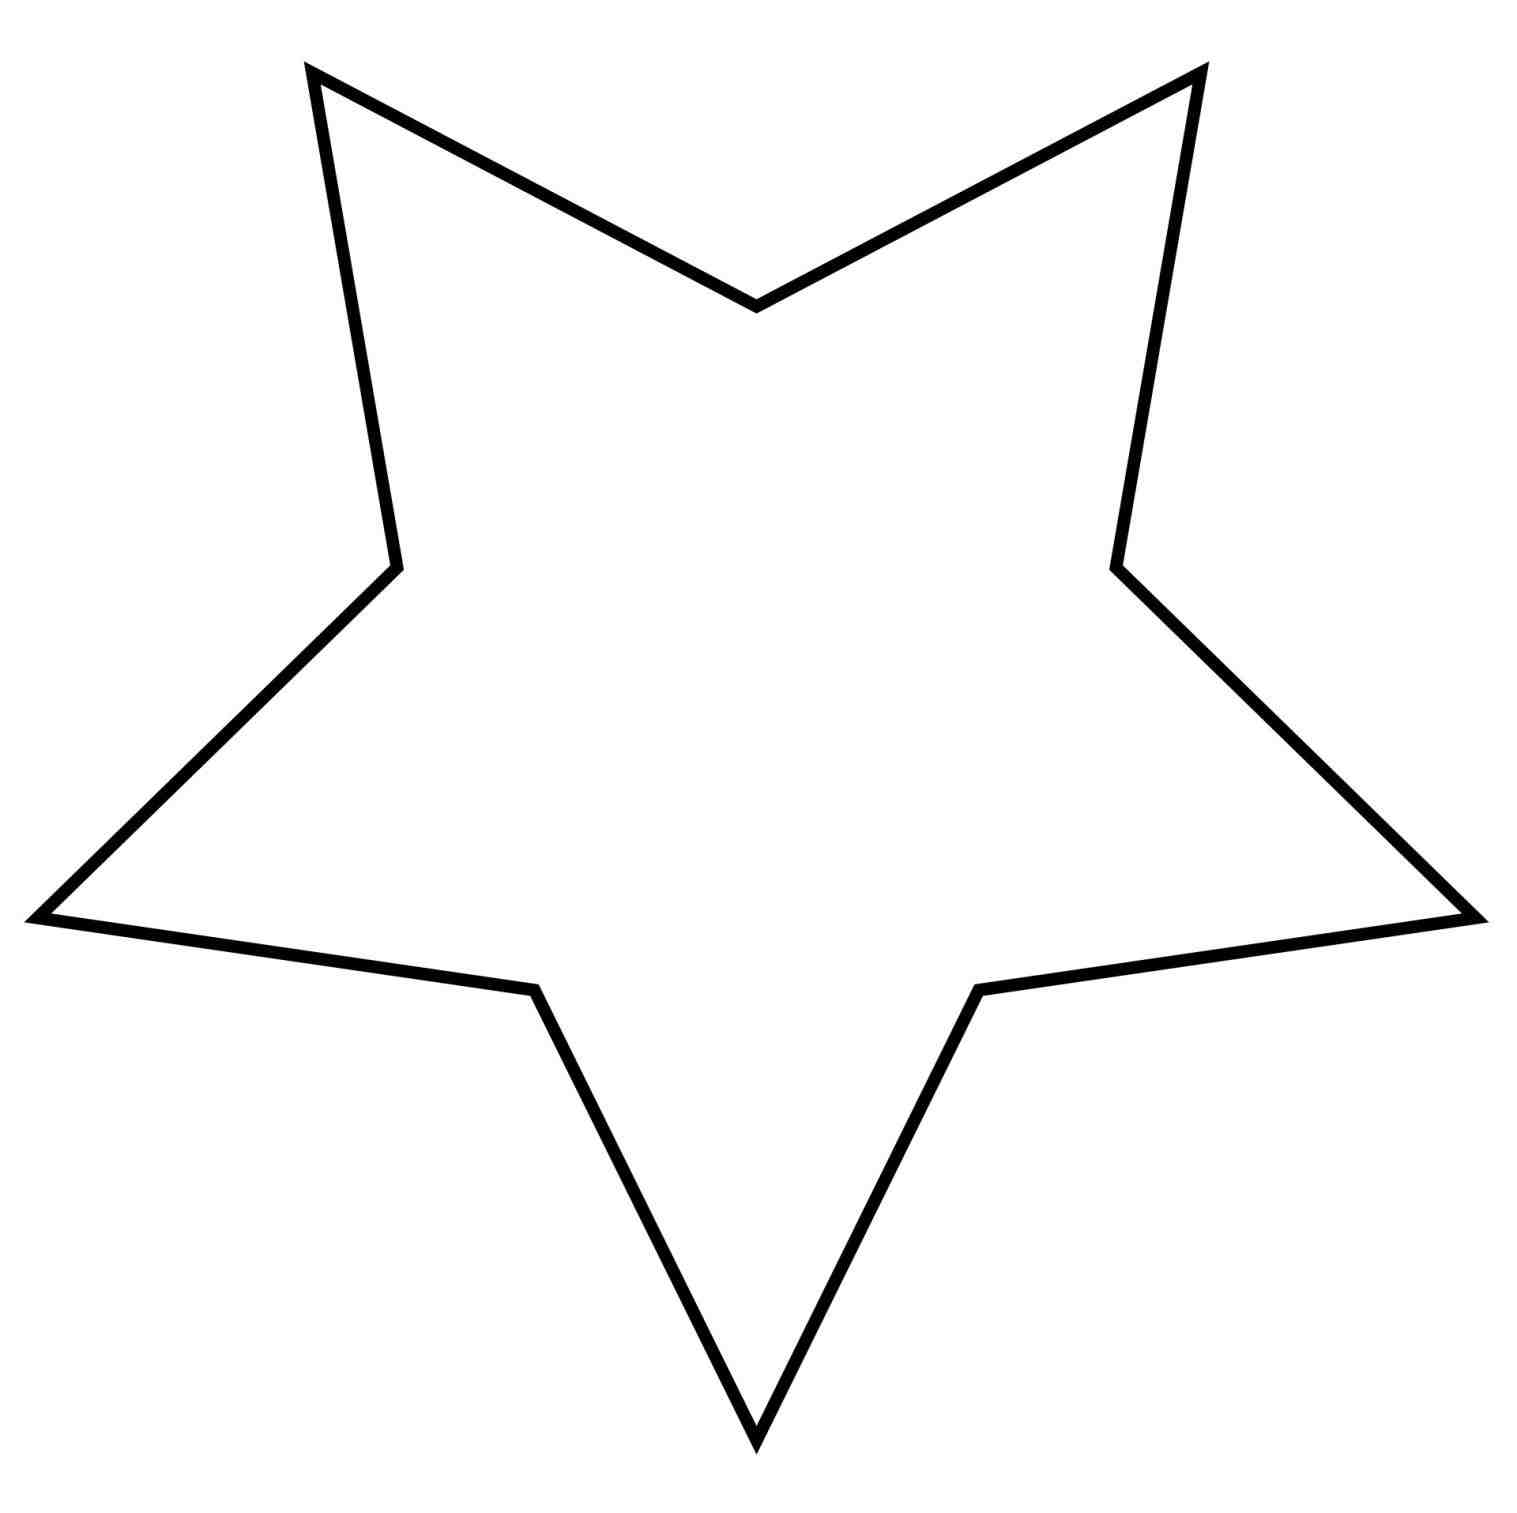 1517x1513 Christmas Star Clipart Black And White Cheminee.website